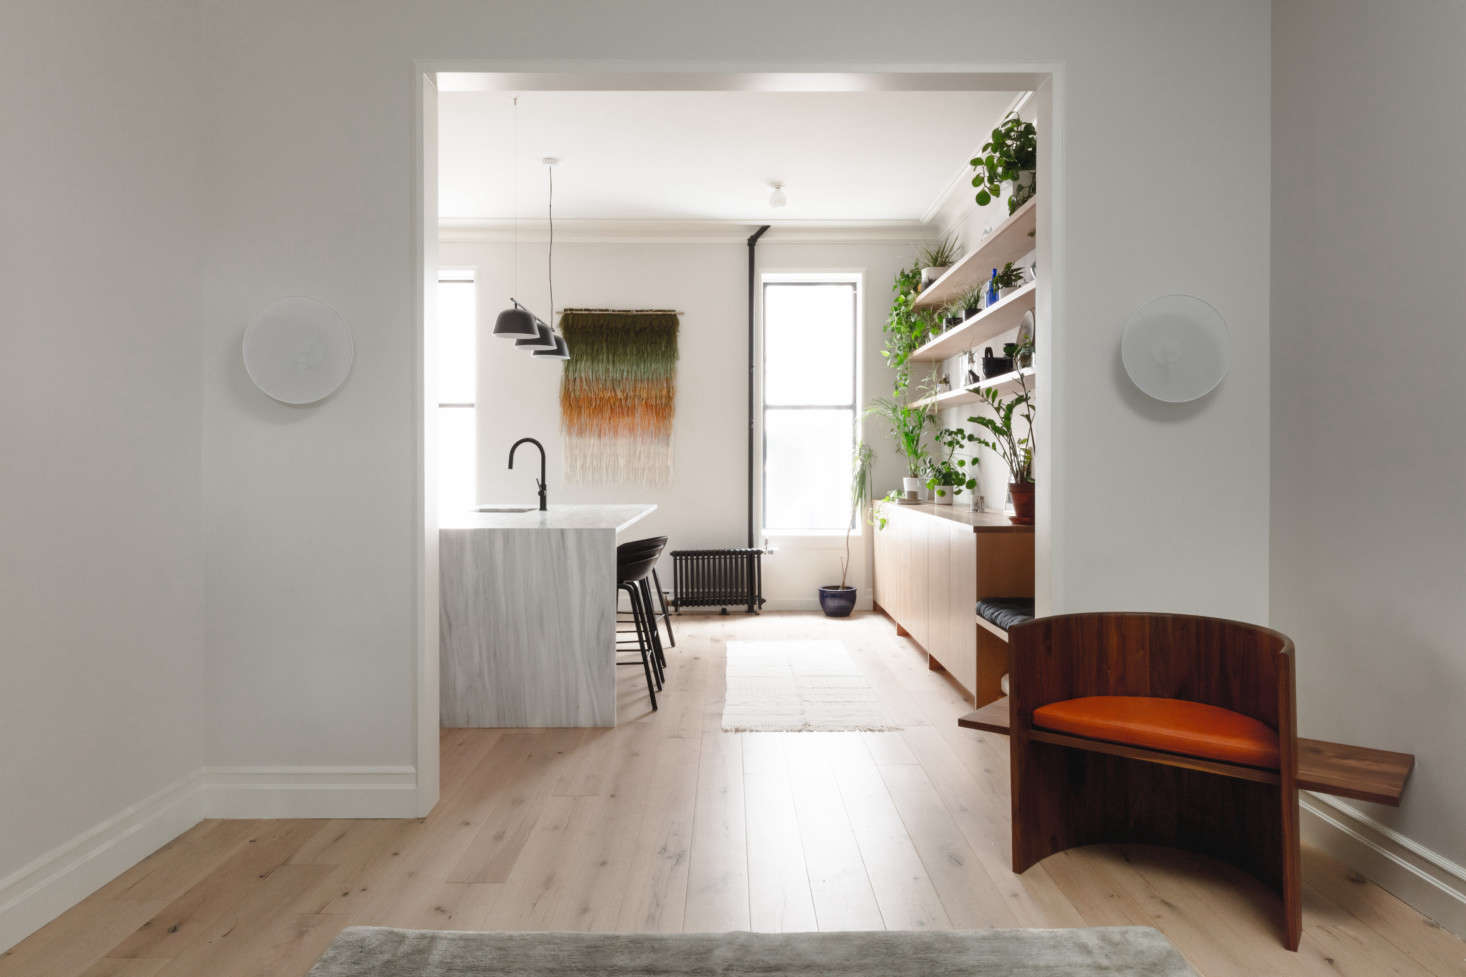 The owners initially wanted the kitchen and living room to be one big loft-like space. &#8